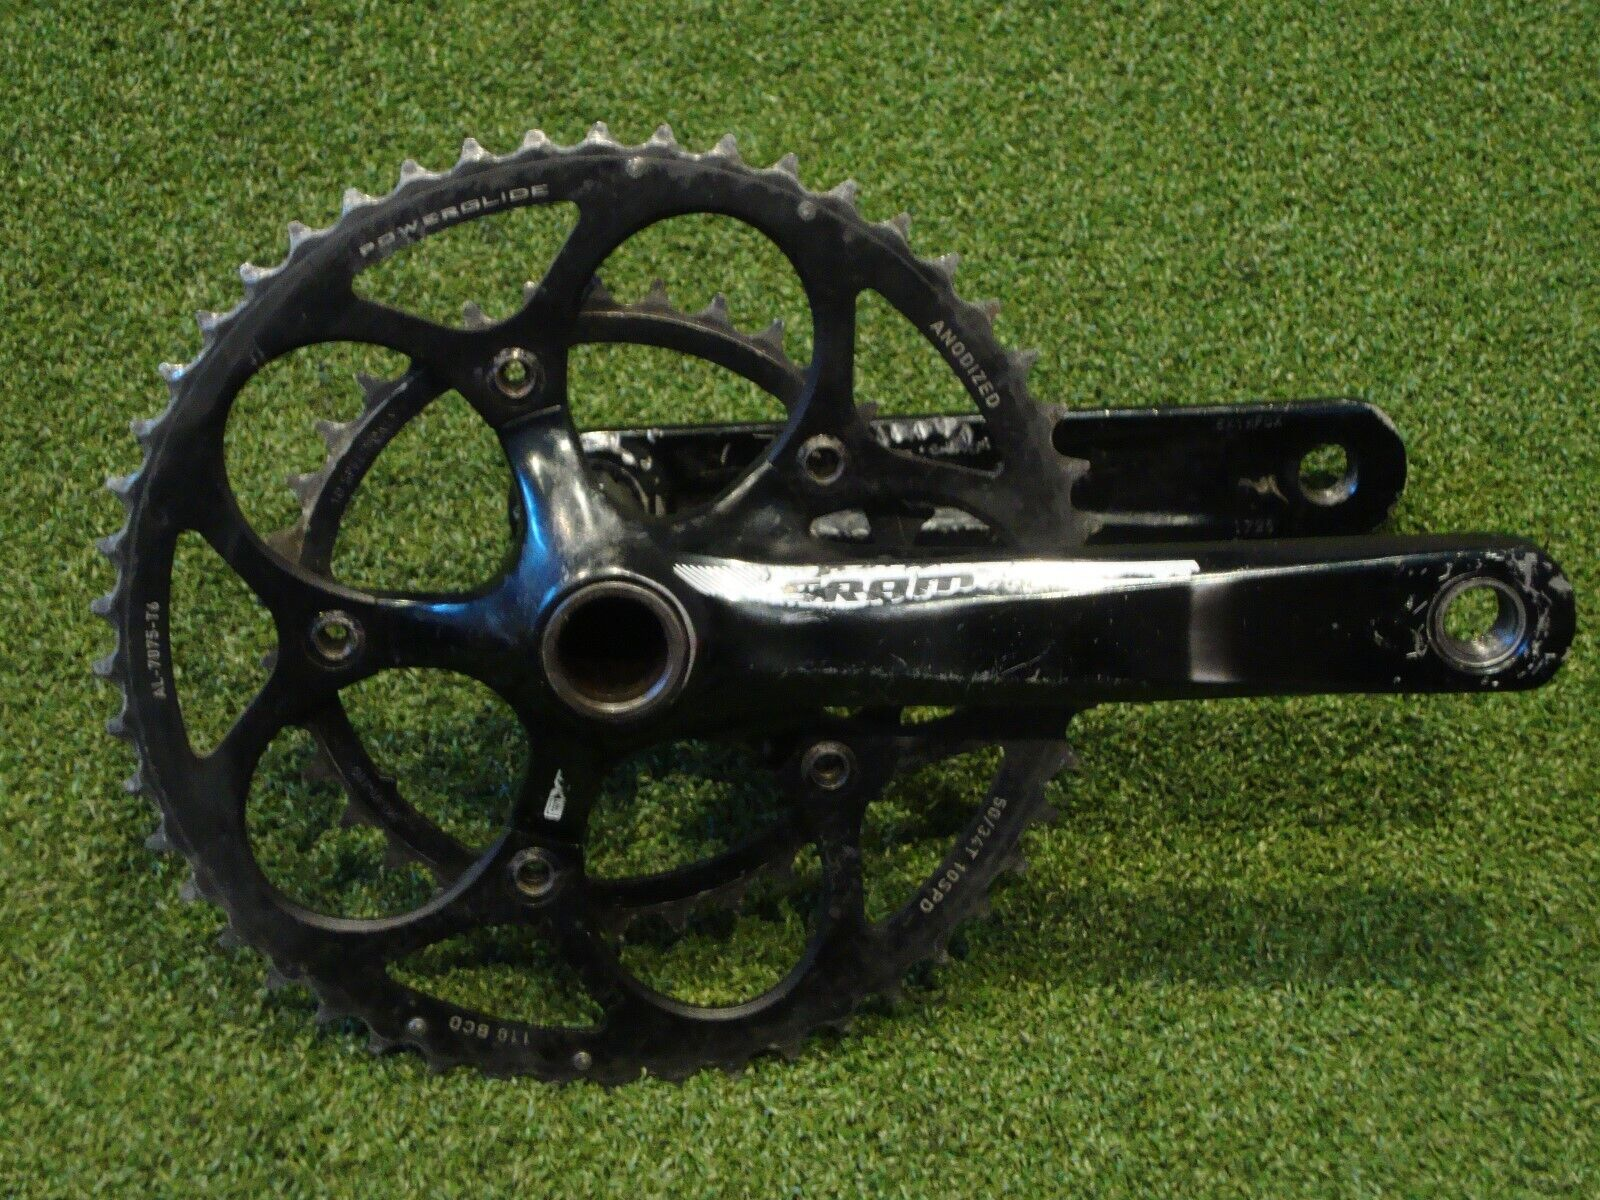 Sram Apex Compact 50 34 Road Bike Cycling Chainset Crankset 172.5 Cranks